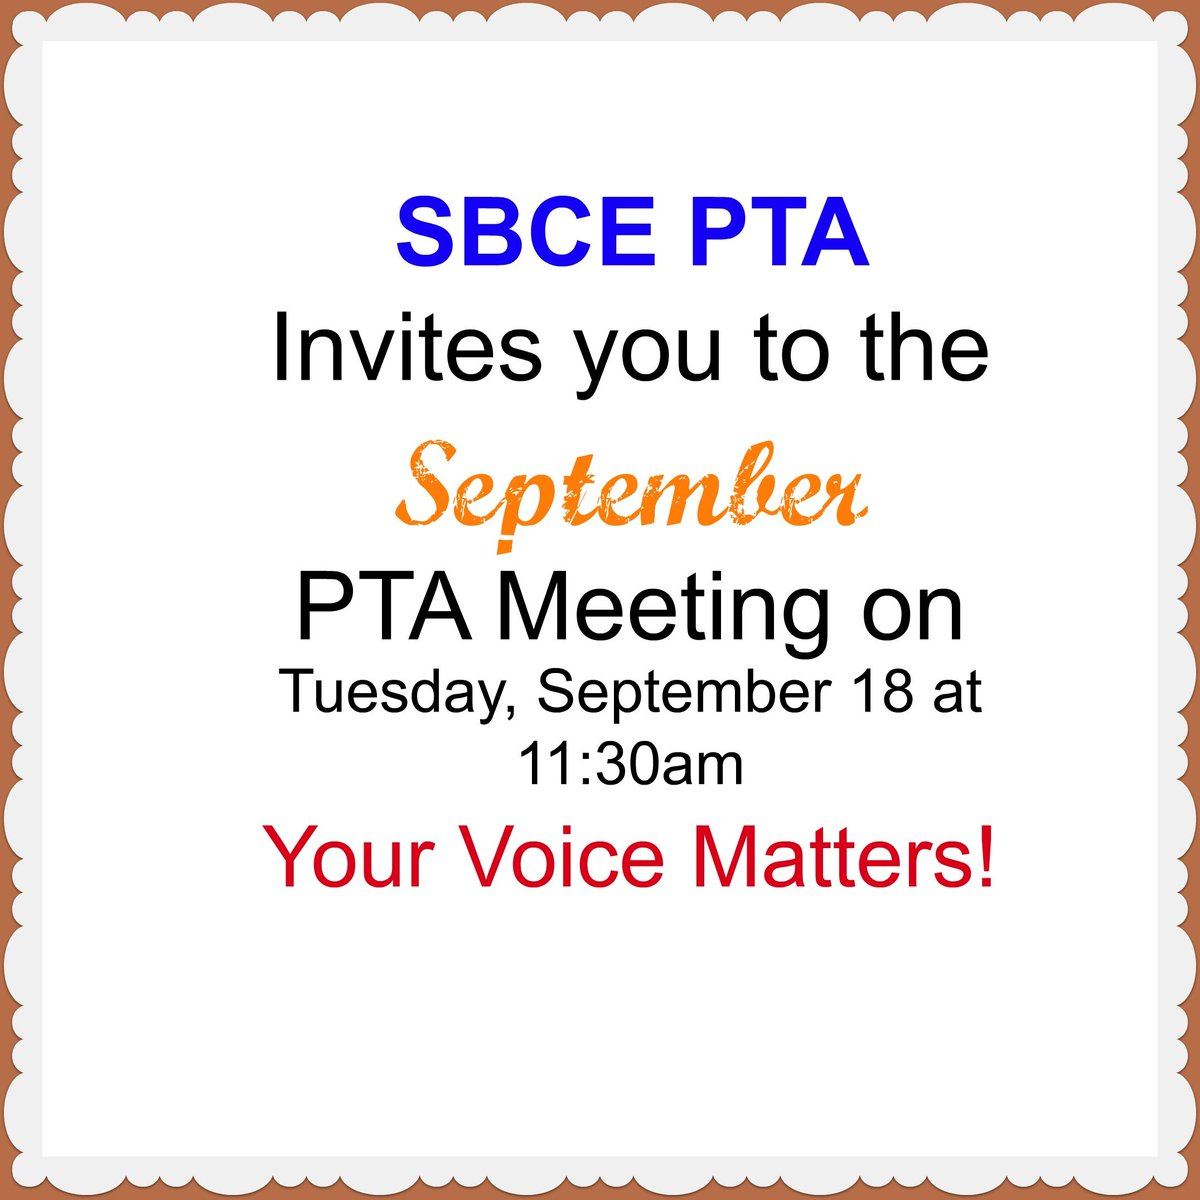 Sbce Pta On Twitter Join Us Today At 11 30am For The September Pta